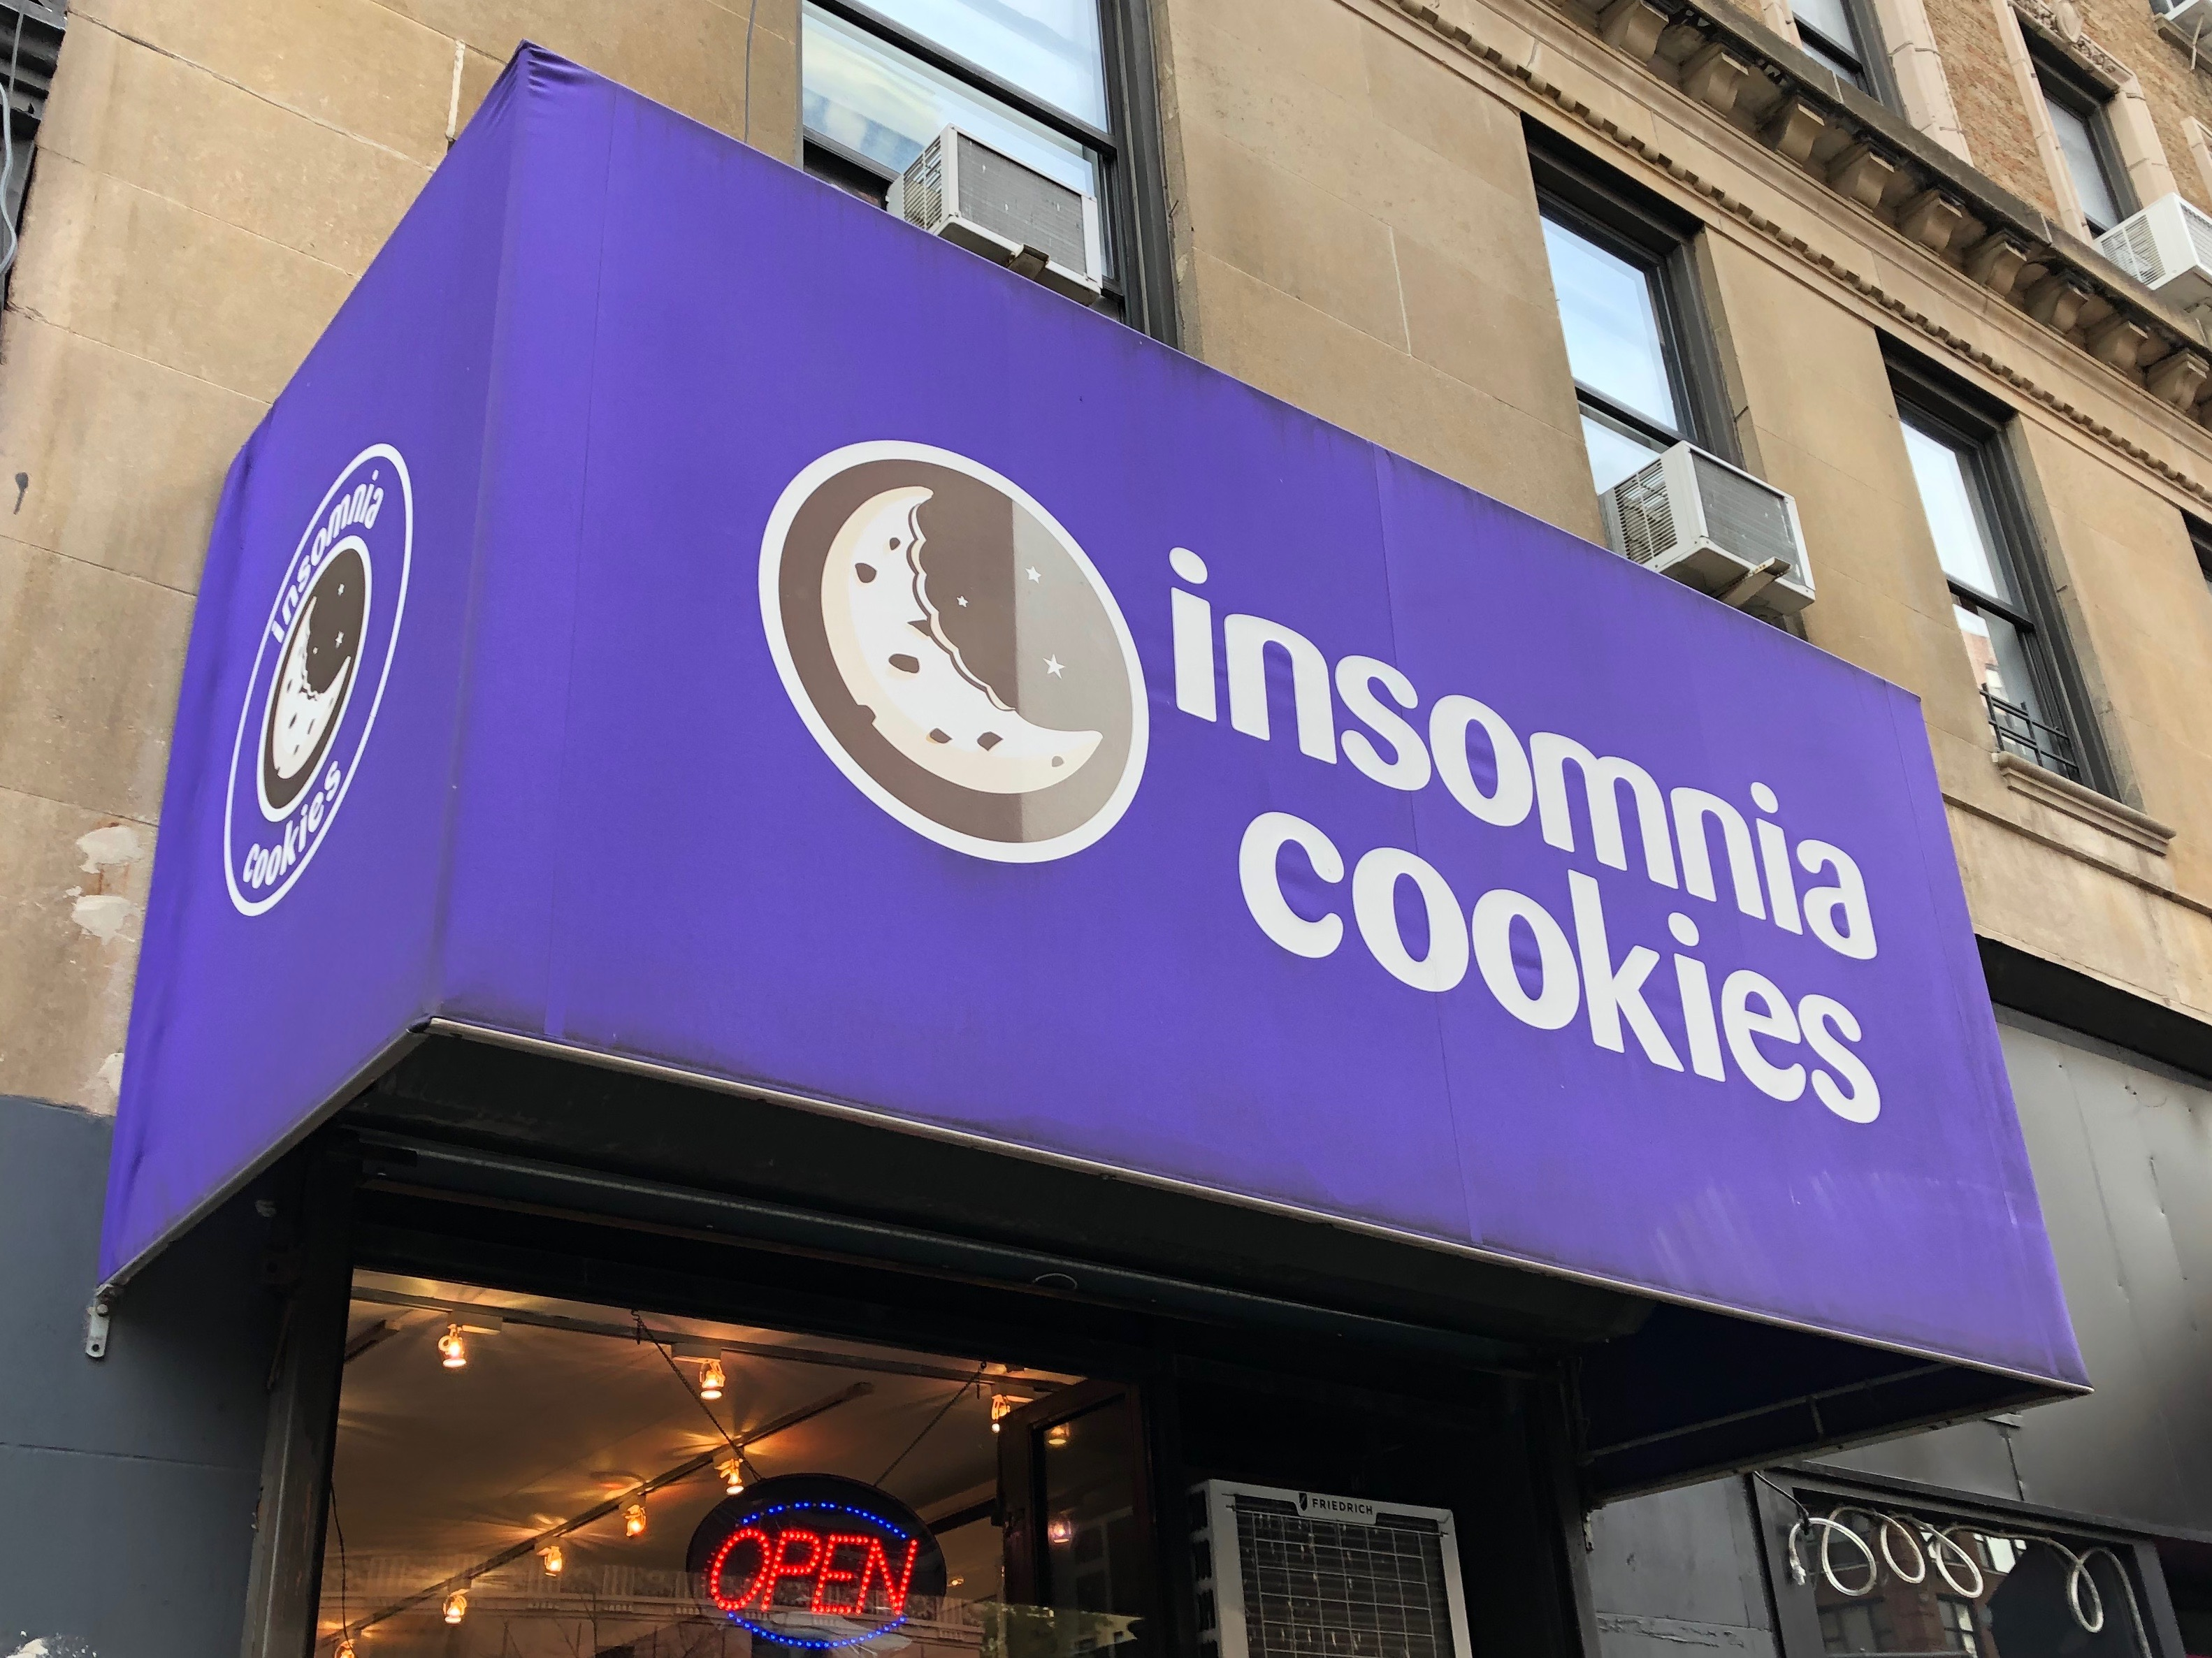 112118-open-to-3-am-NYC